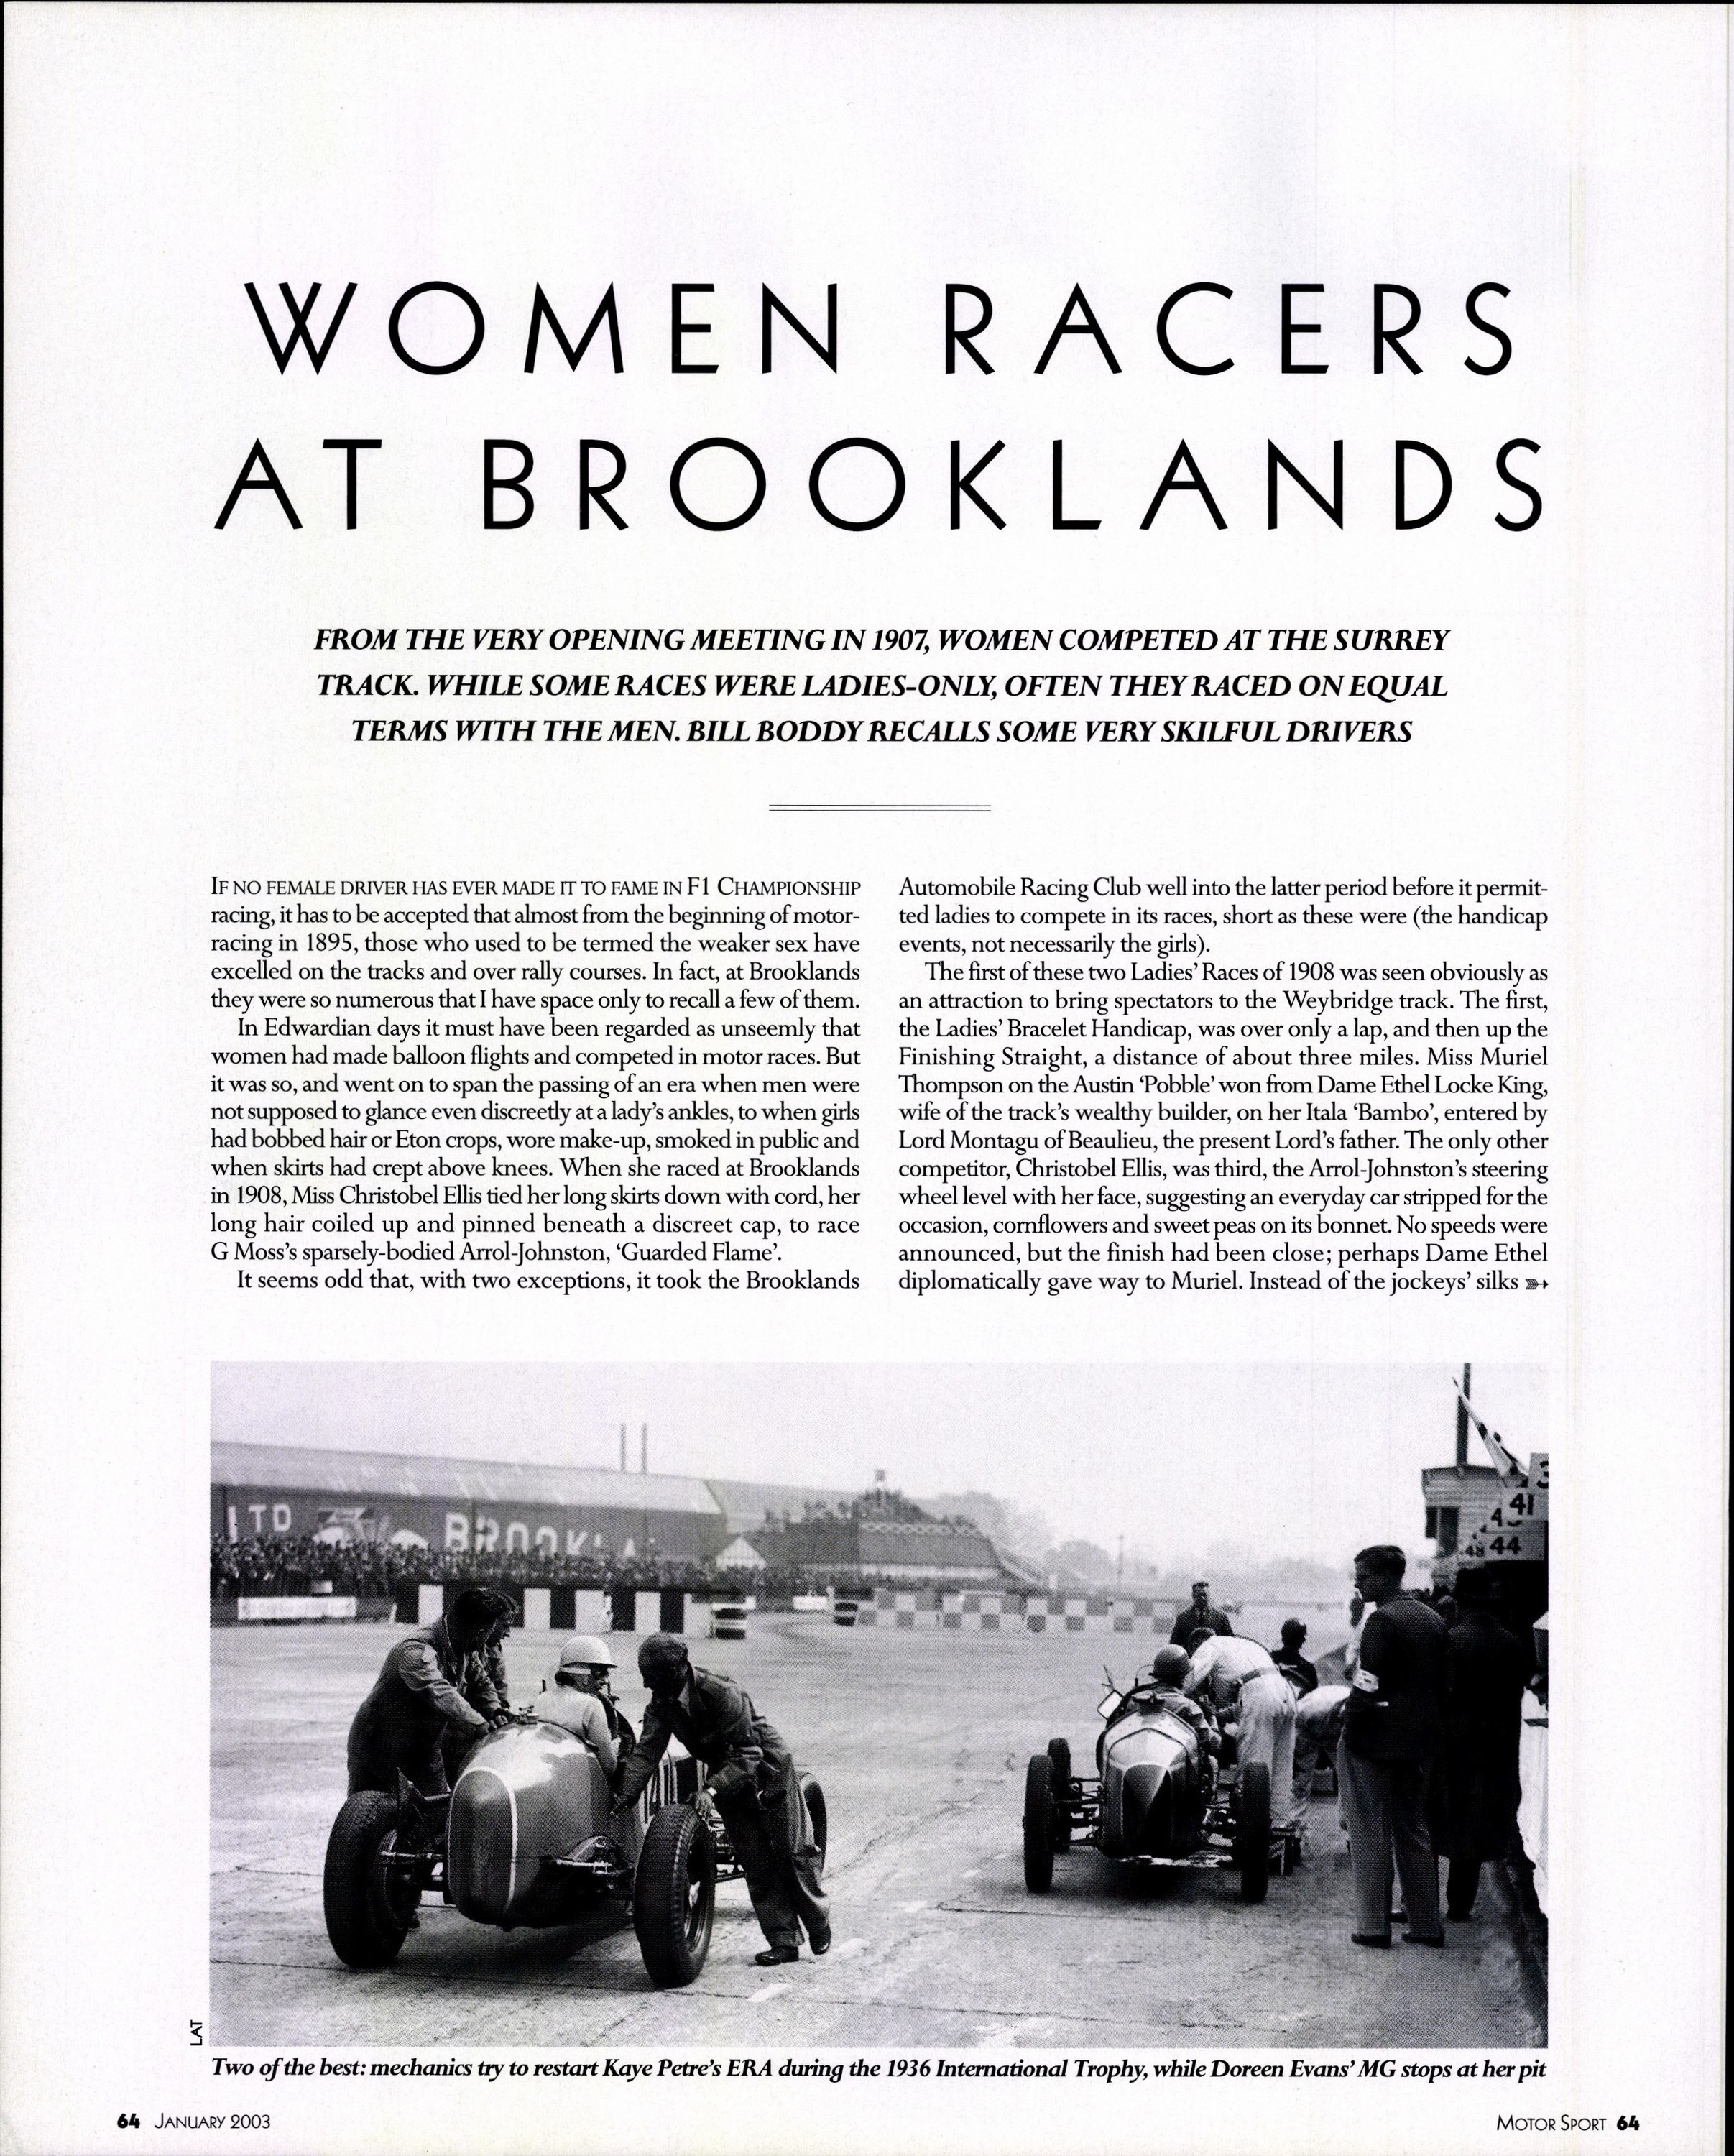 women racers at brooklands image